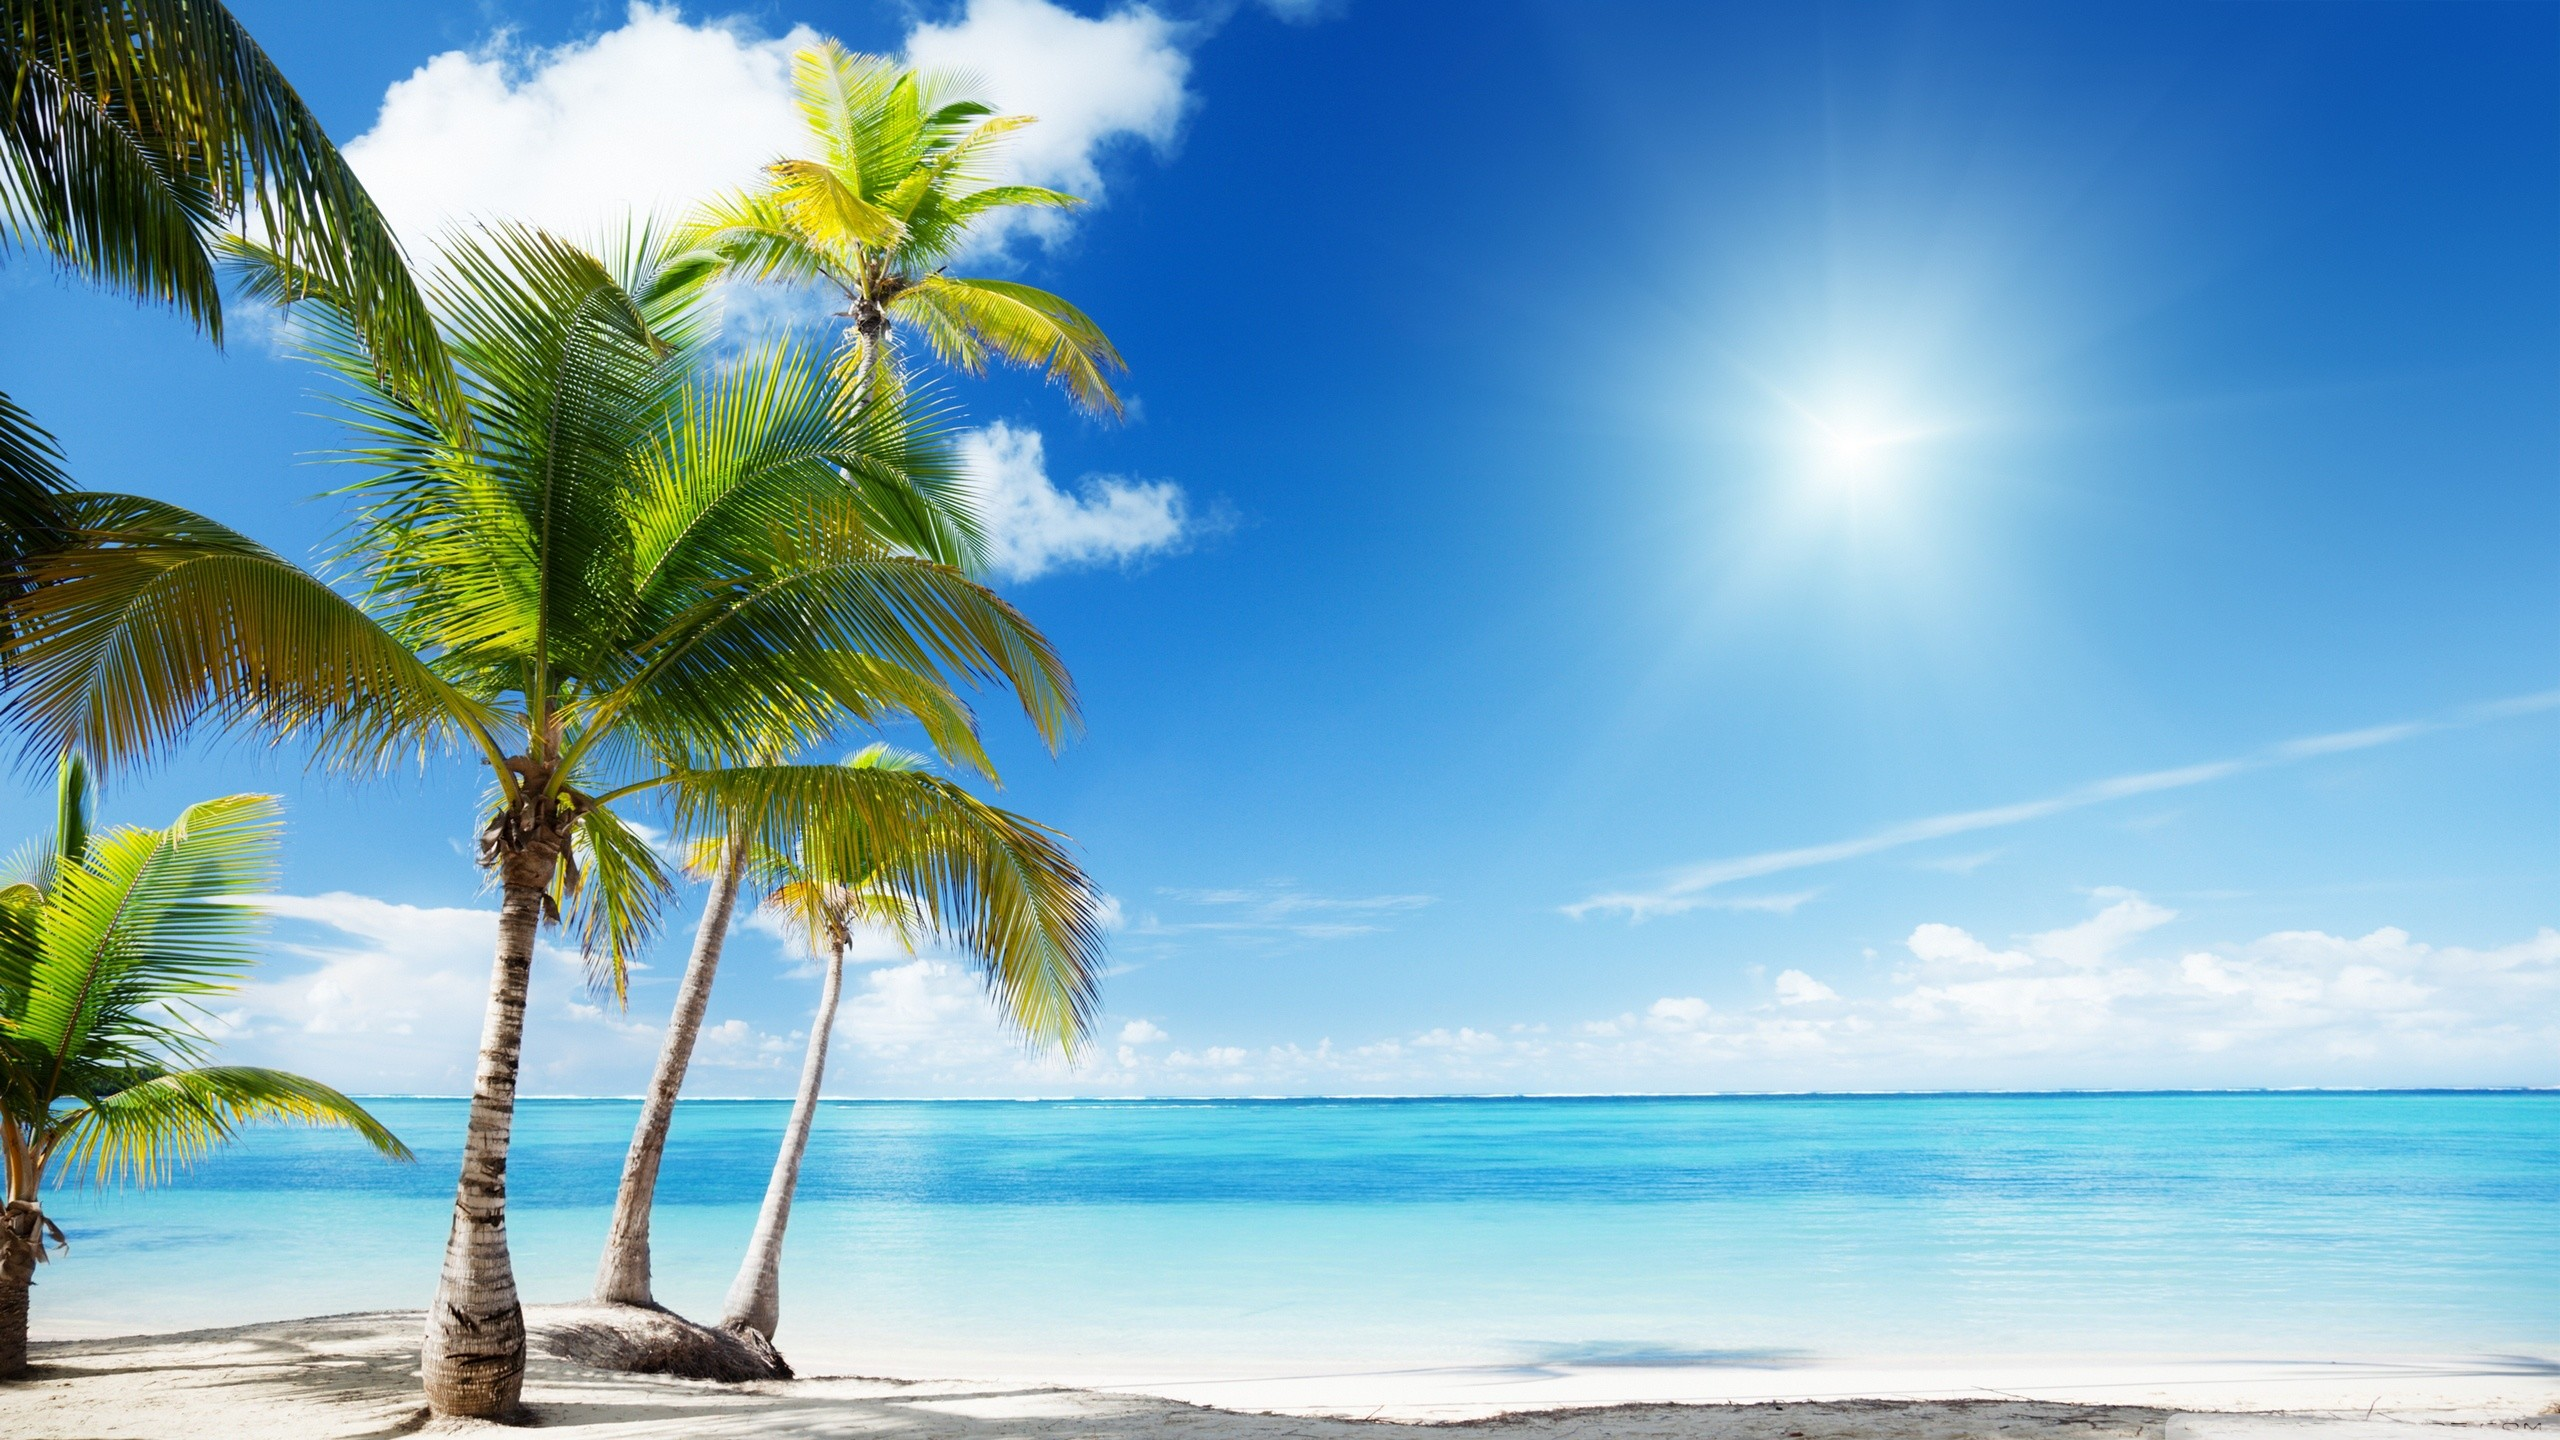 Tropical Beach Wallpaper Desktop ·① WallpaperTag